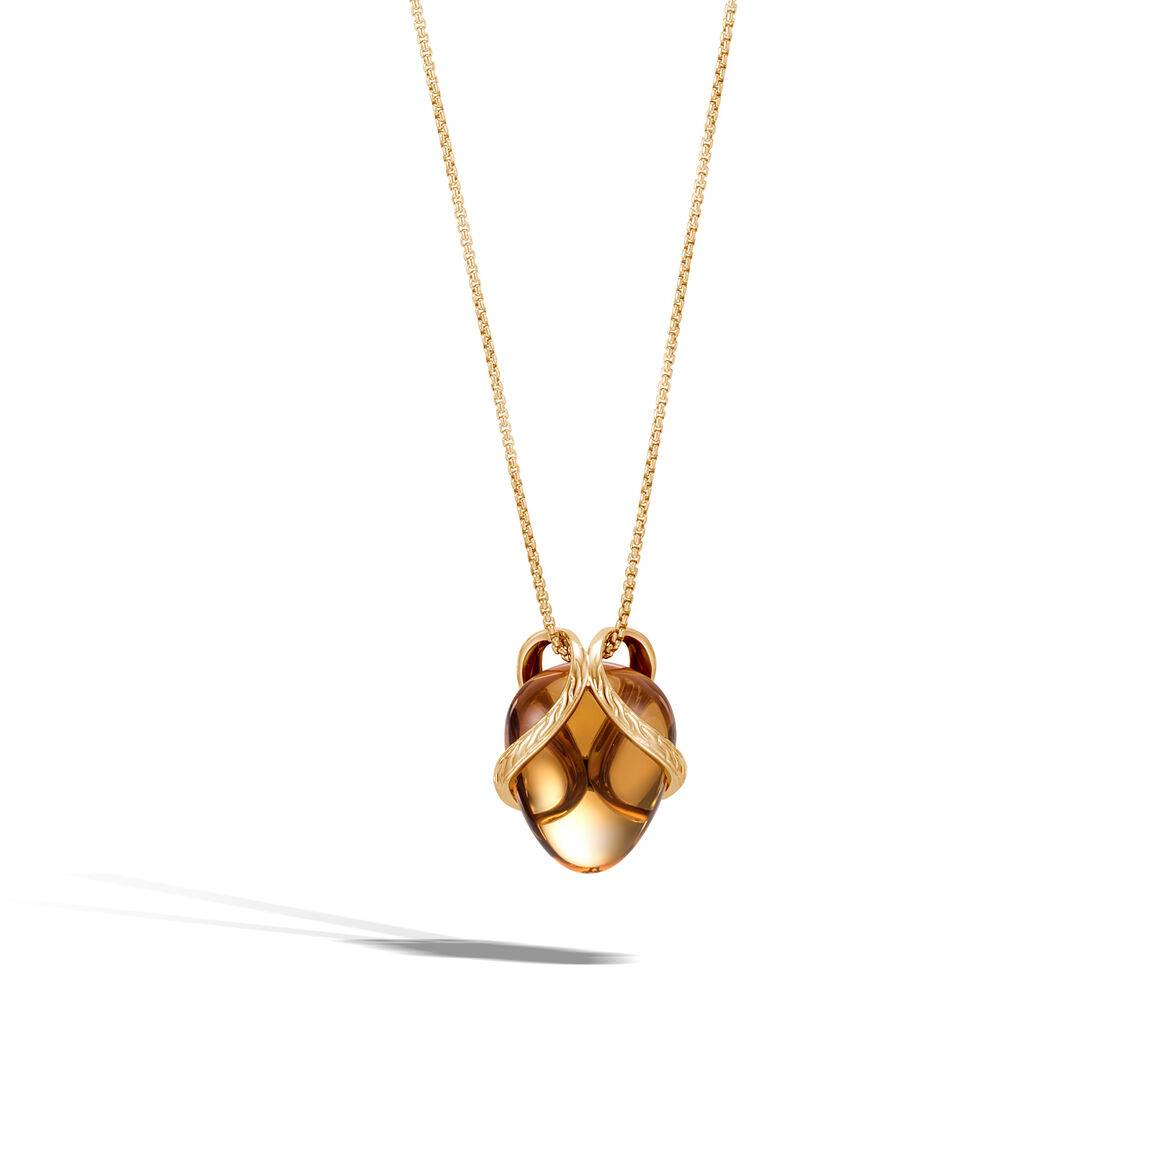 Classic Chain Pendant Necklace In 18K Gold with 17MM Gemstone